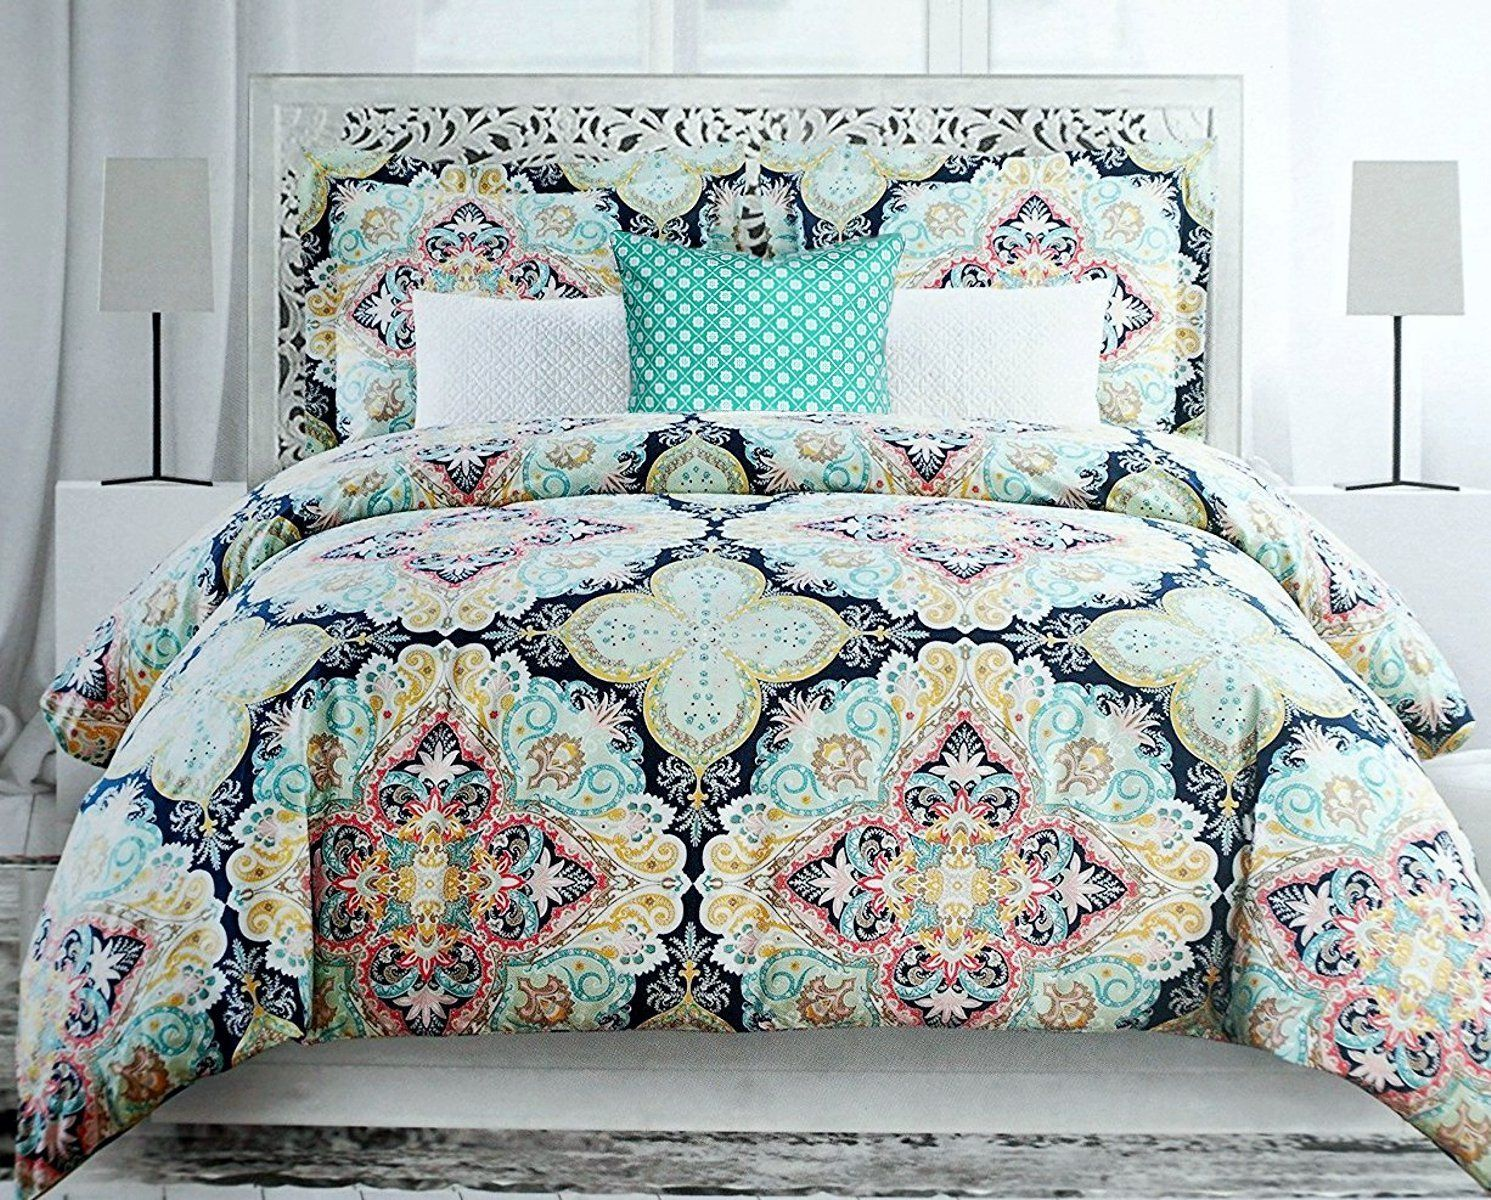 Boho Chic Bedding Sets With More Master Bedroom Ideas